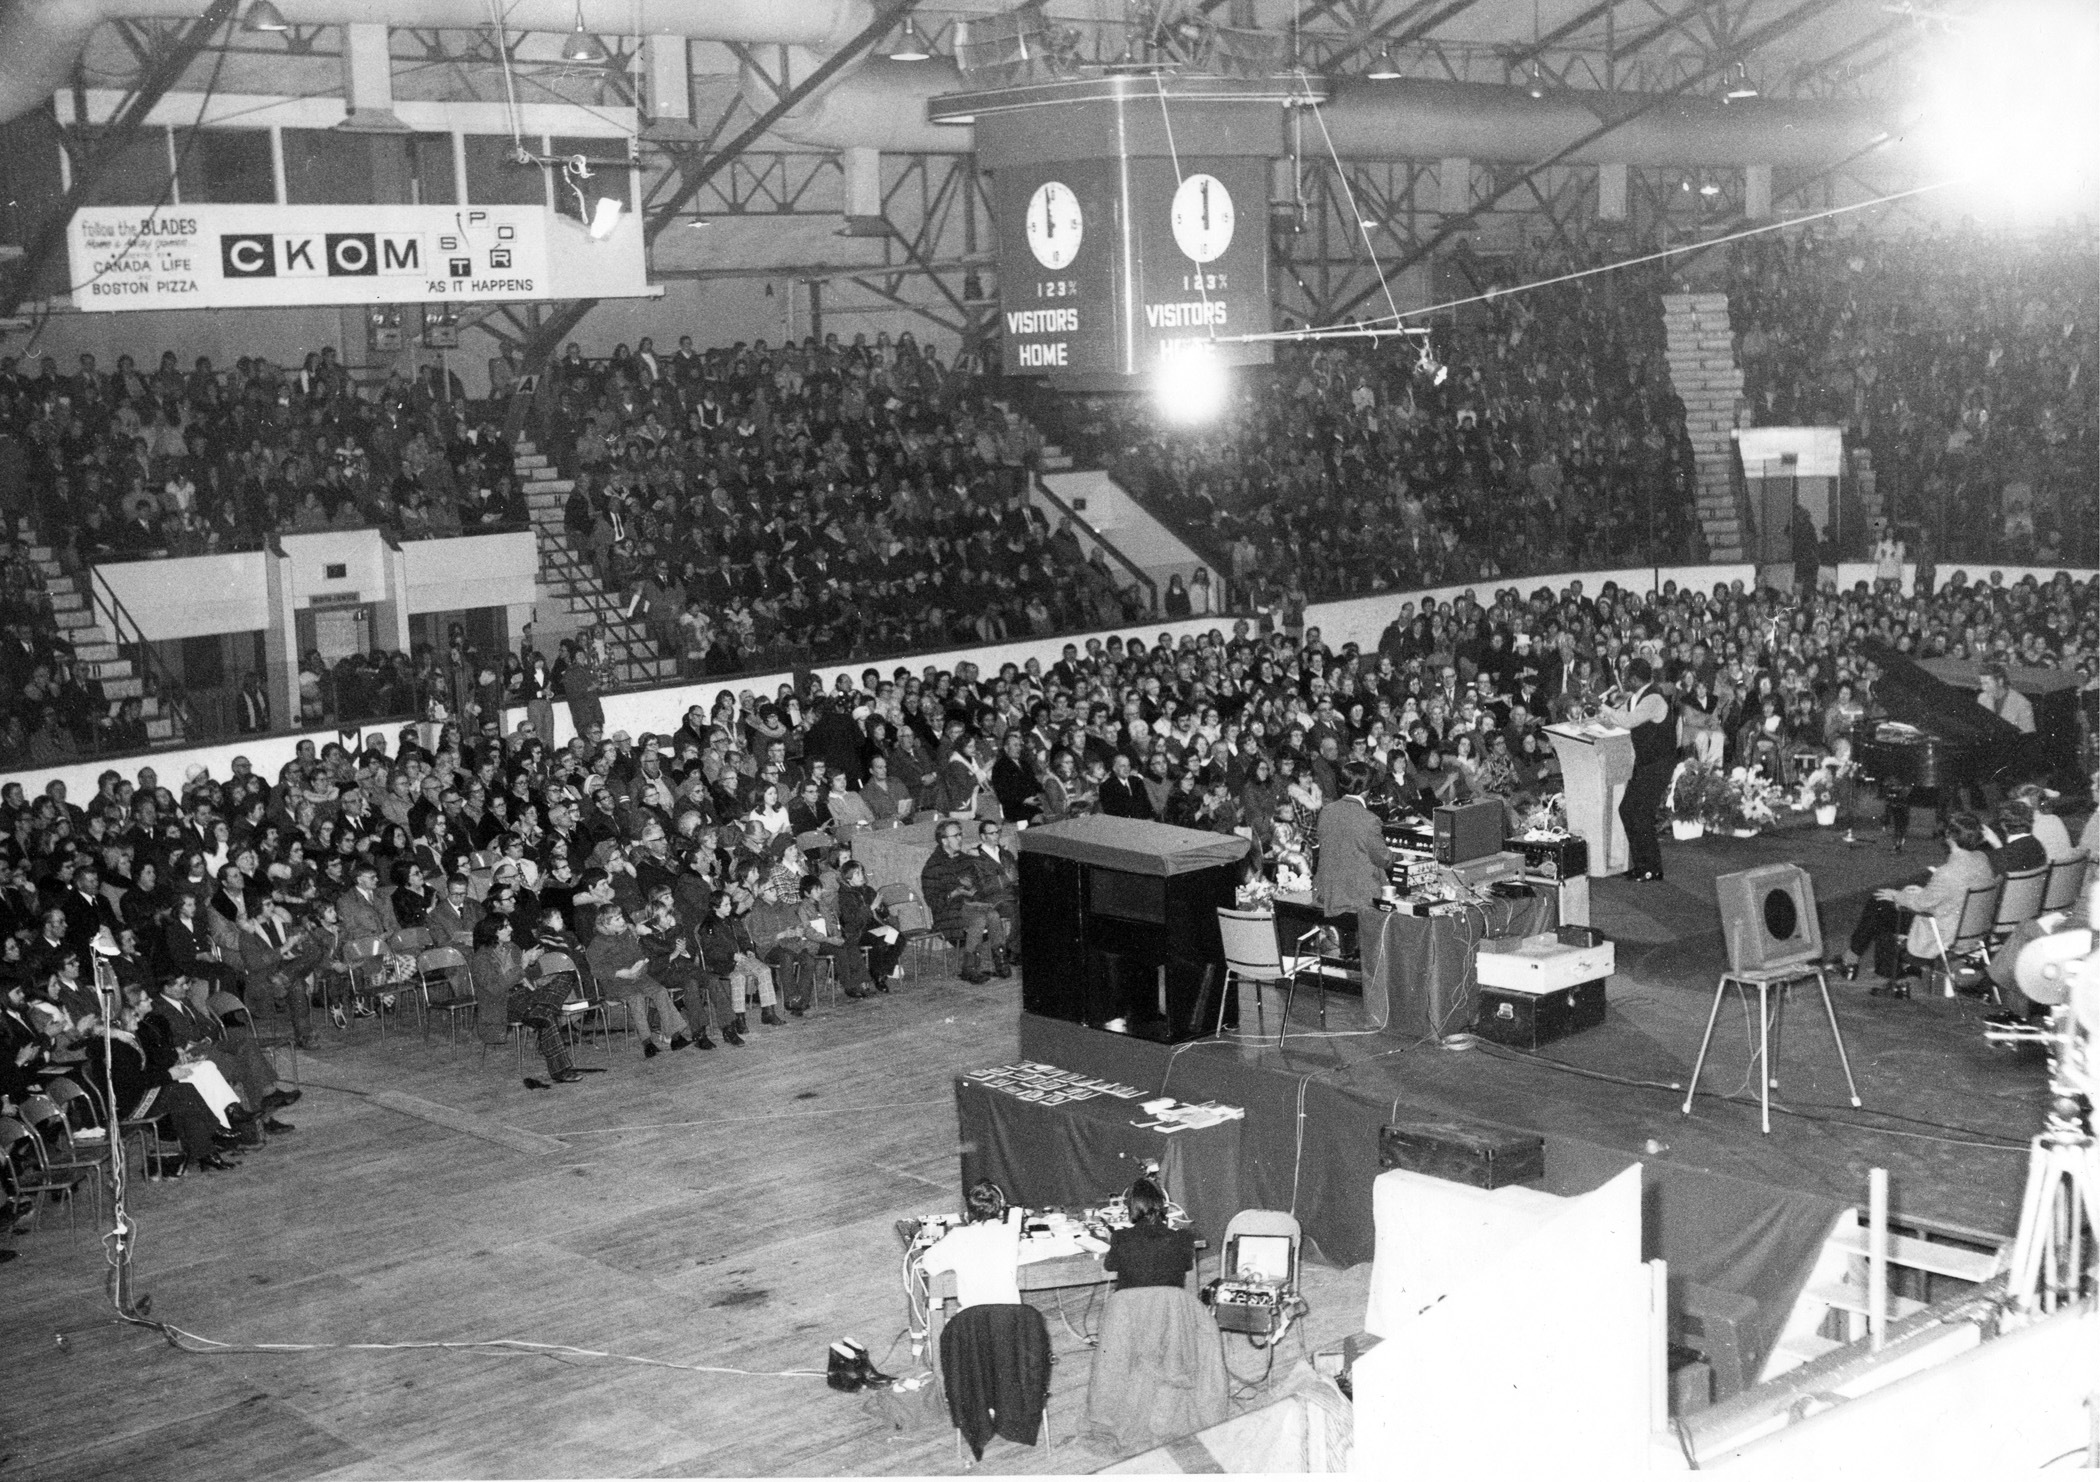 """""""Crusade of Christ"""" went the name of TV evangelist Terry Winter's visit to Saskatoon Arena in 1973. (Saskatoon Public Library Local History Room - Photo CP-6744-2)"""